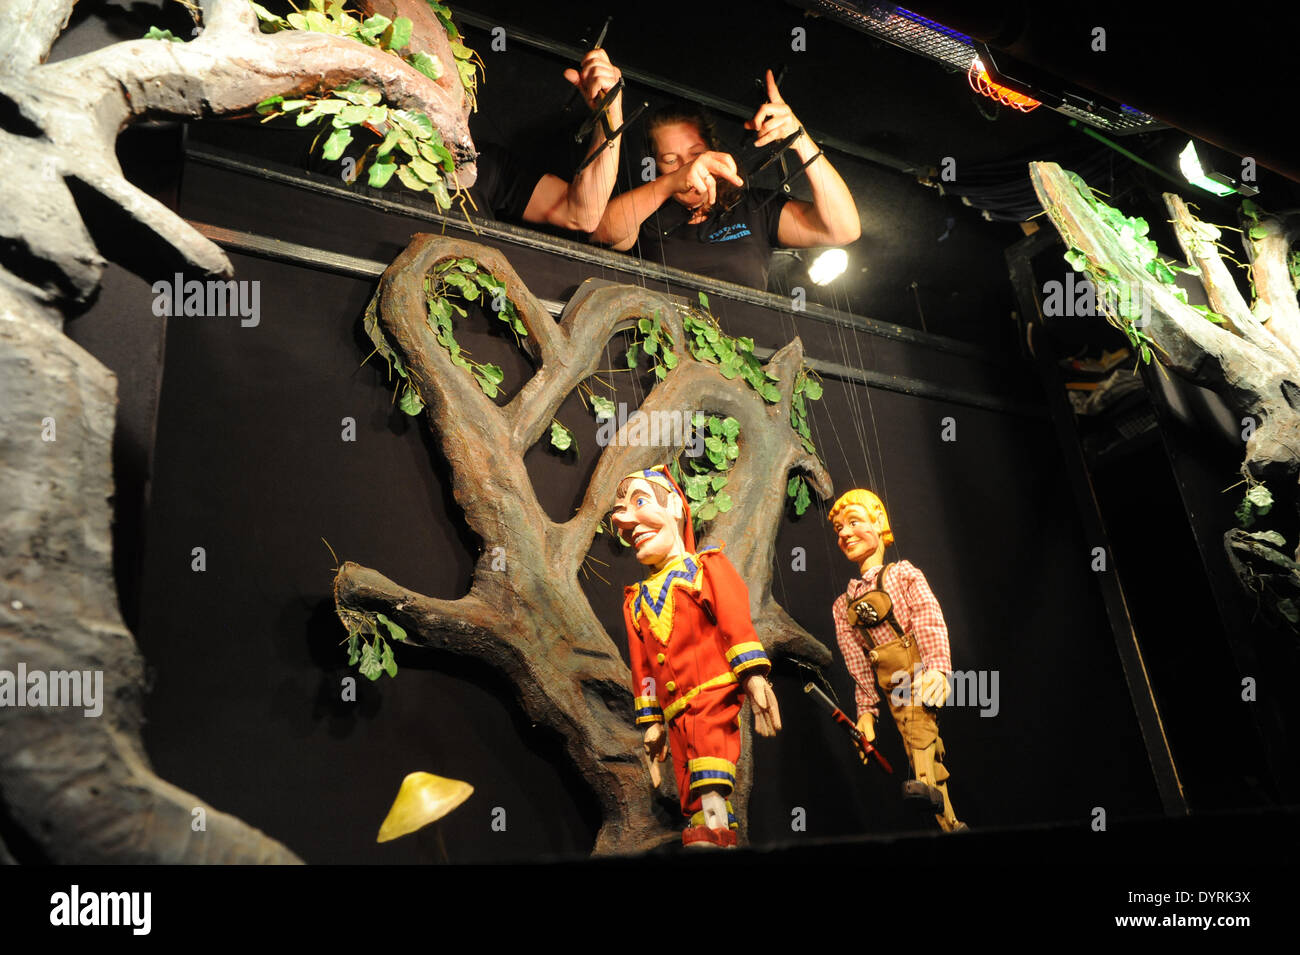 The Maatz Puppet Theater in Munich, 2012 - Stock Image